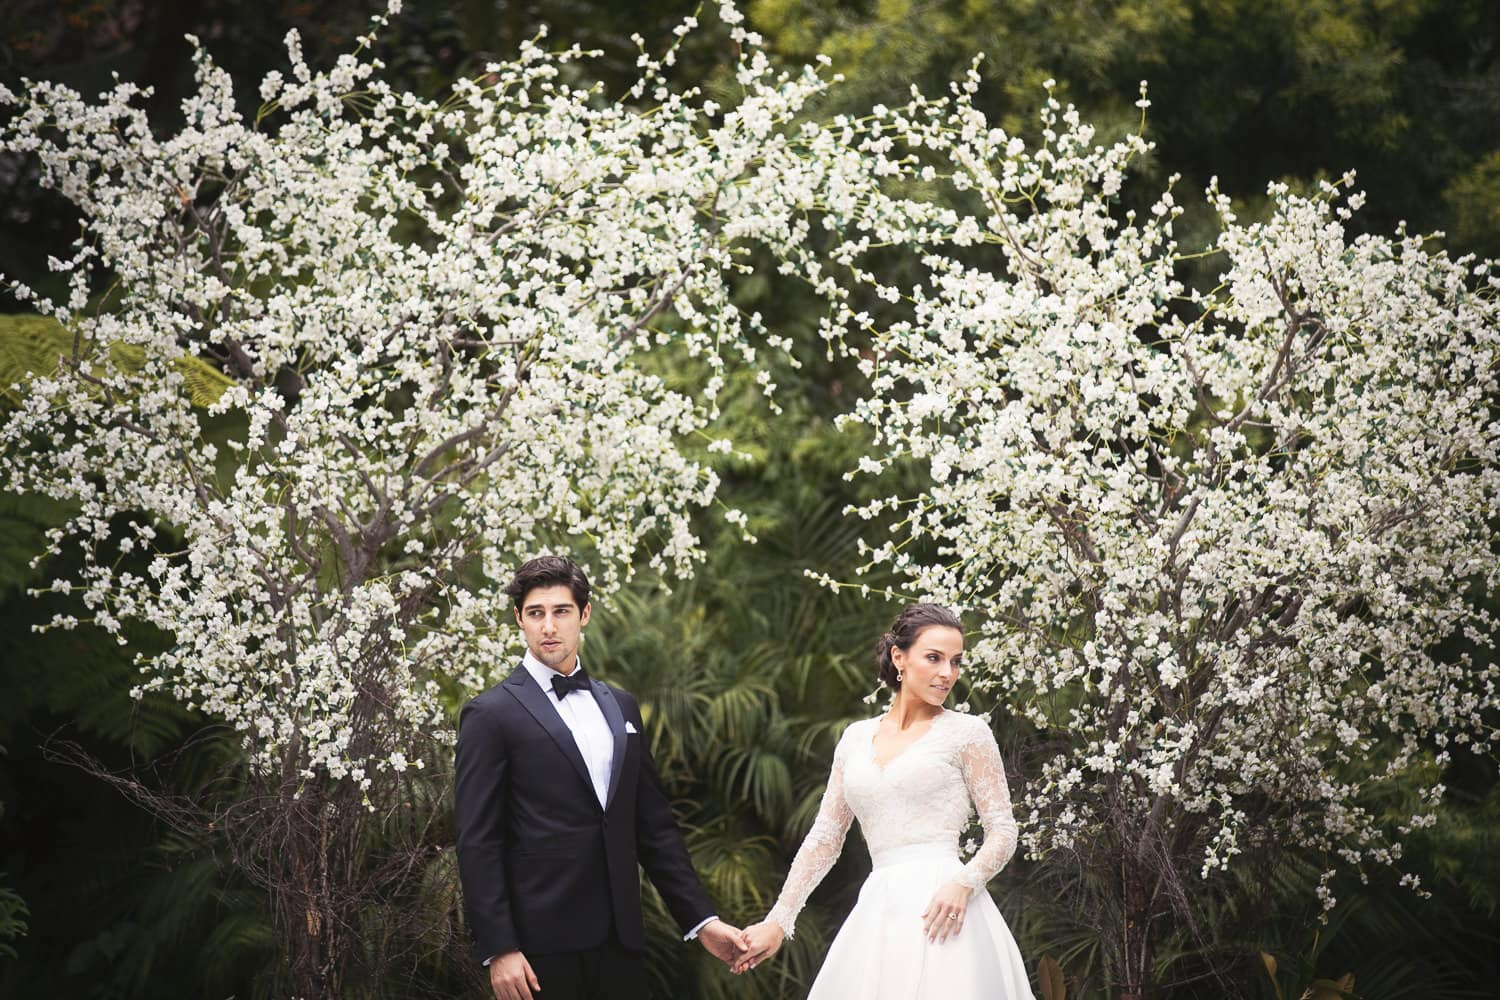 Modern Bride and Groom Portrait at their Hotel Bel-Air ceremony site